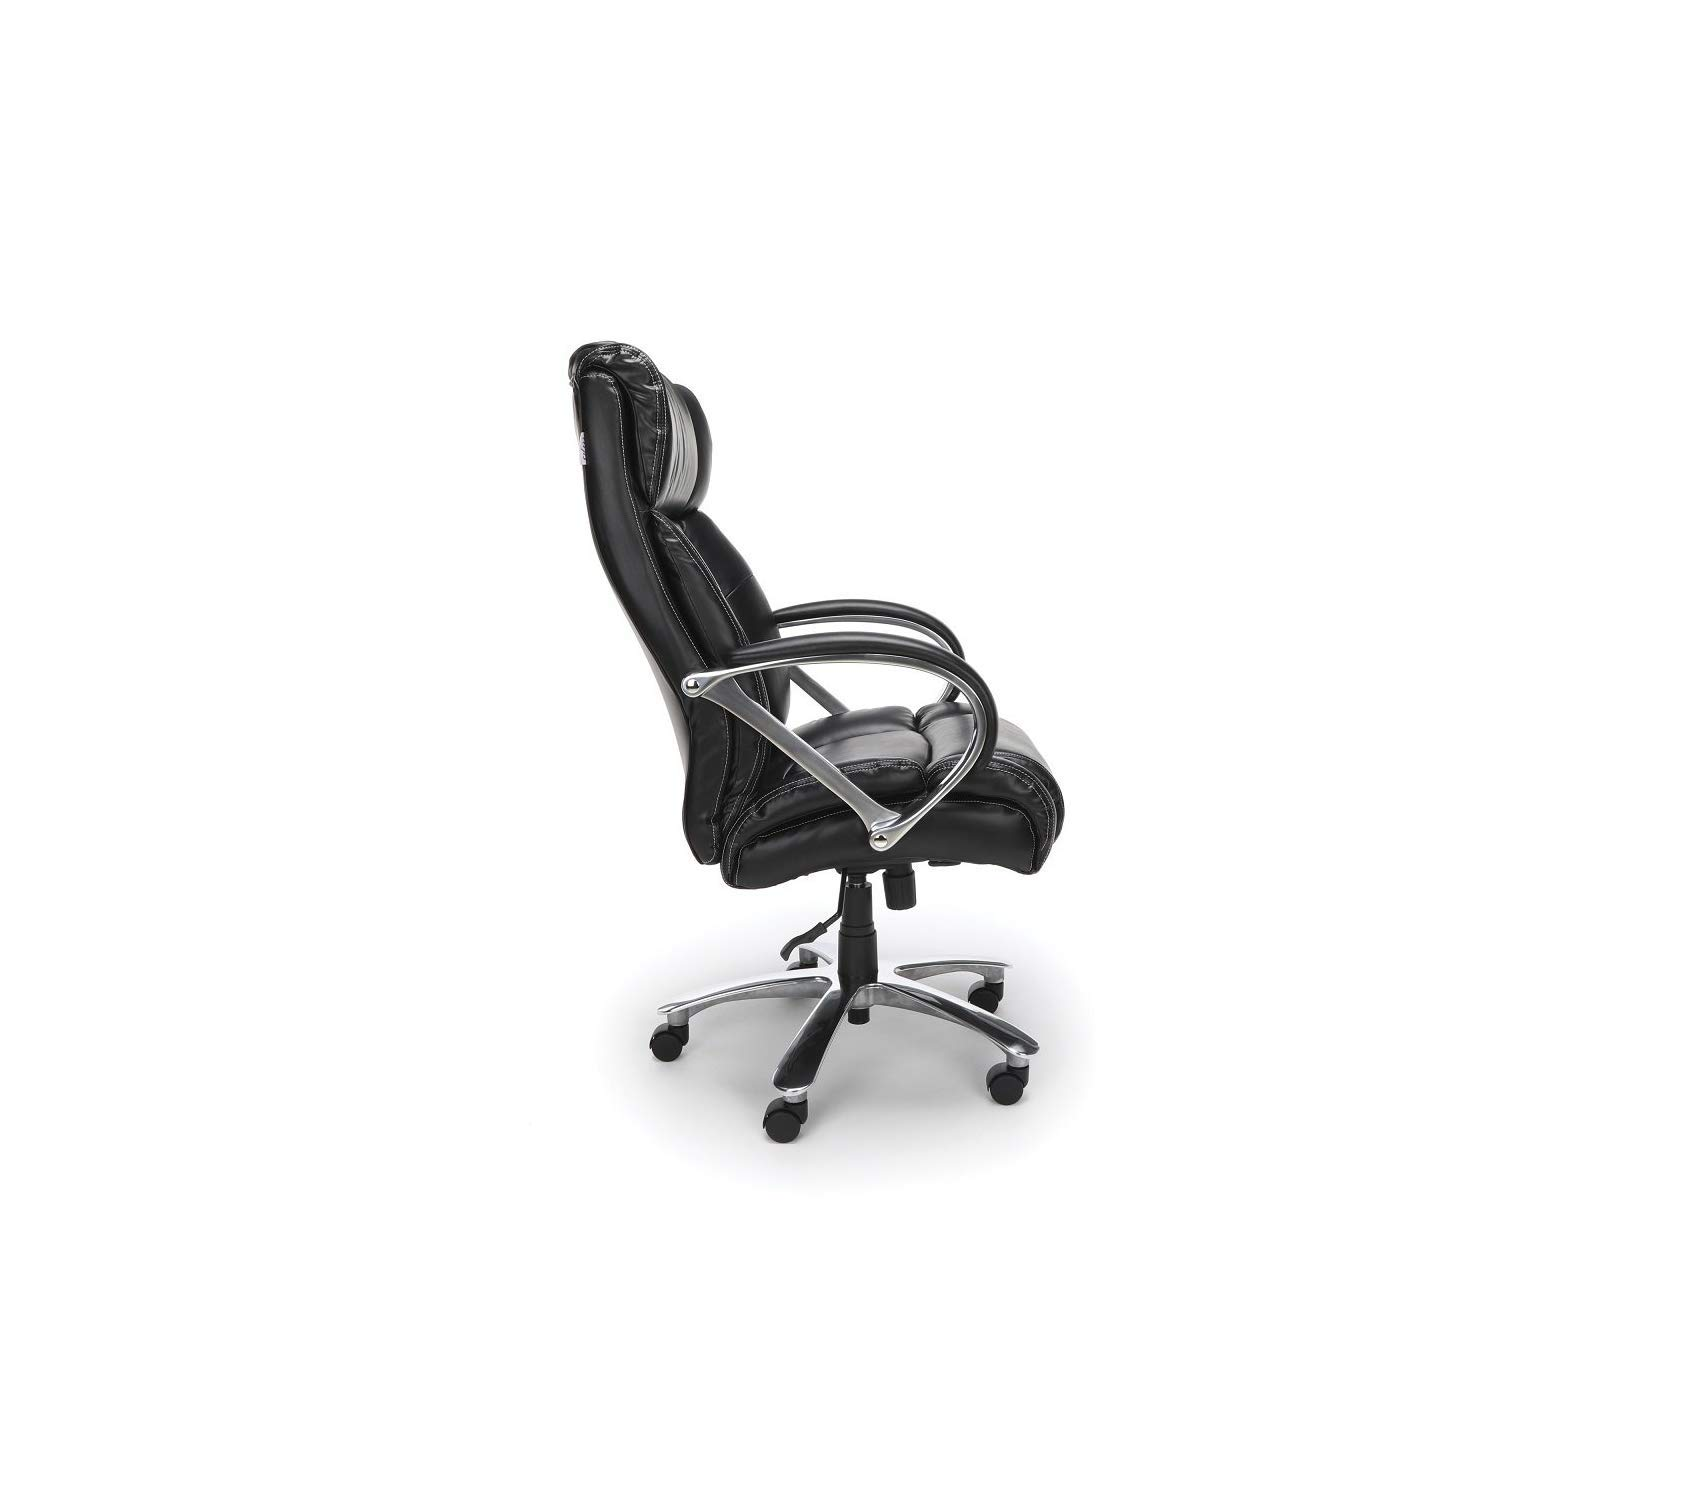 Оfm Avenger Series Big and Tall Leather Executive Chair - Black Computer Chair with Arms, Black/Chrome by Оfm (Image #3)